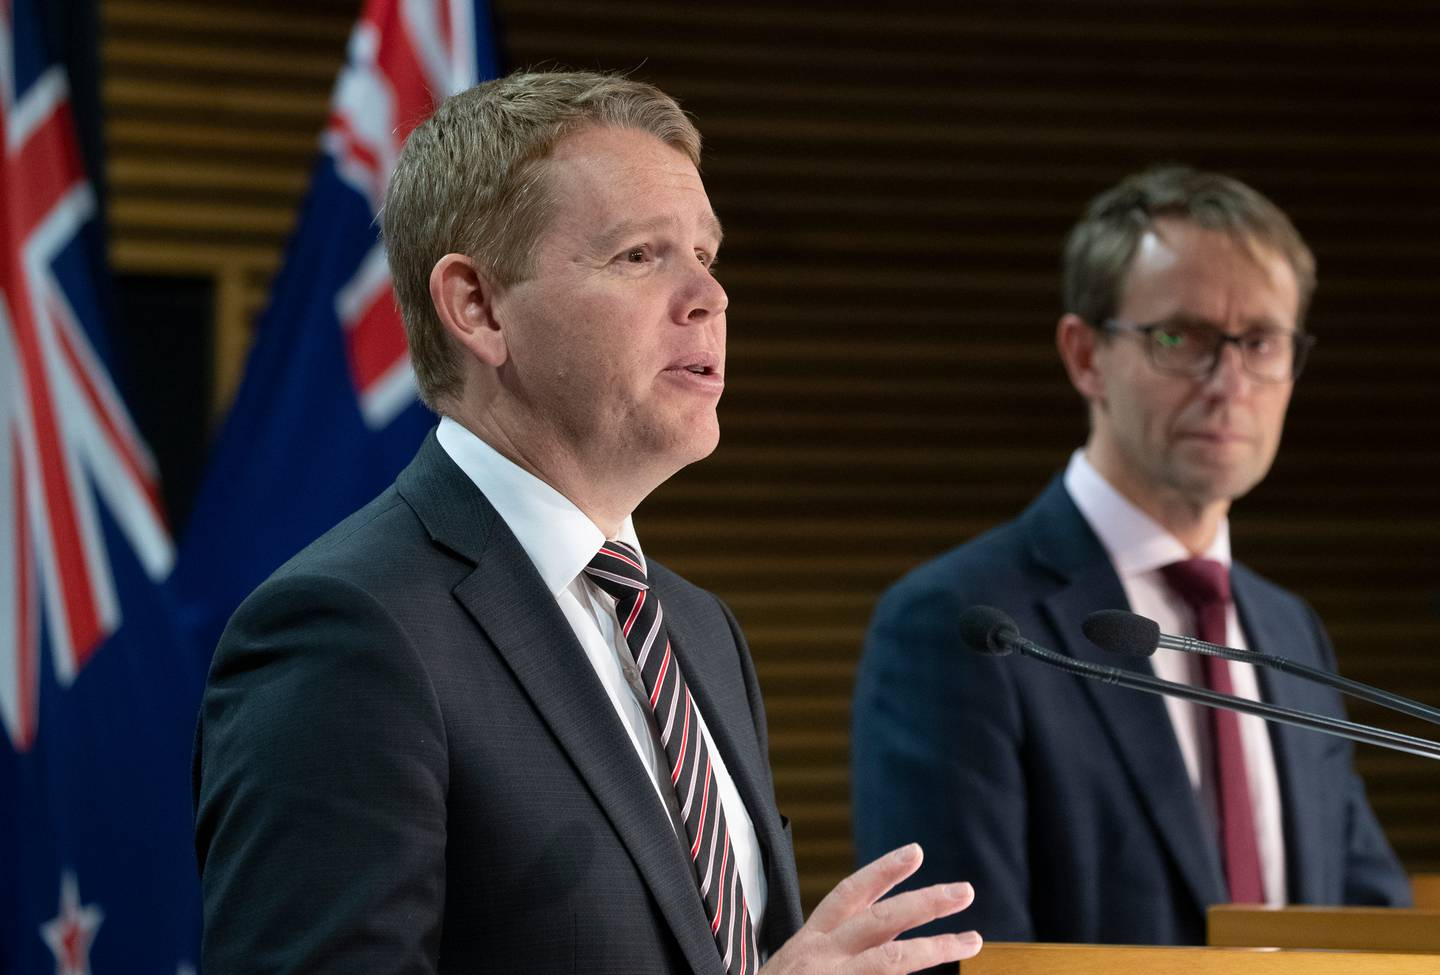 Covid-19 Response Minister Chris Hipkins and director-general of health Dr Ashley Bloomfield during their press conference at Parliament, Wellington. Photo /  Mark Mitch